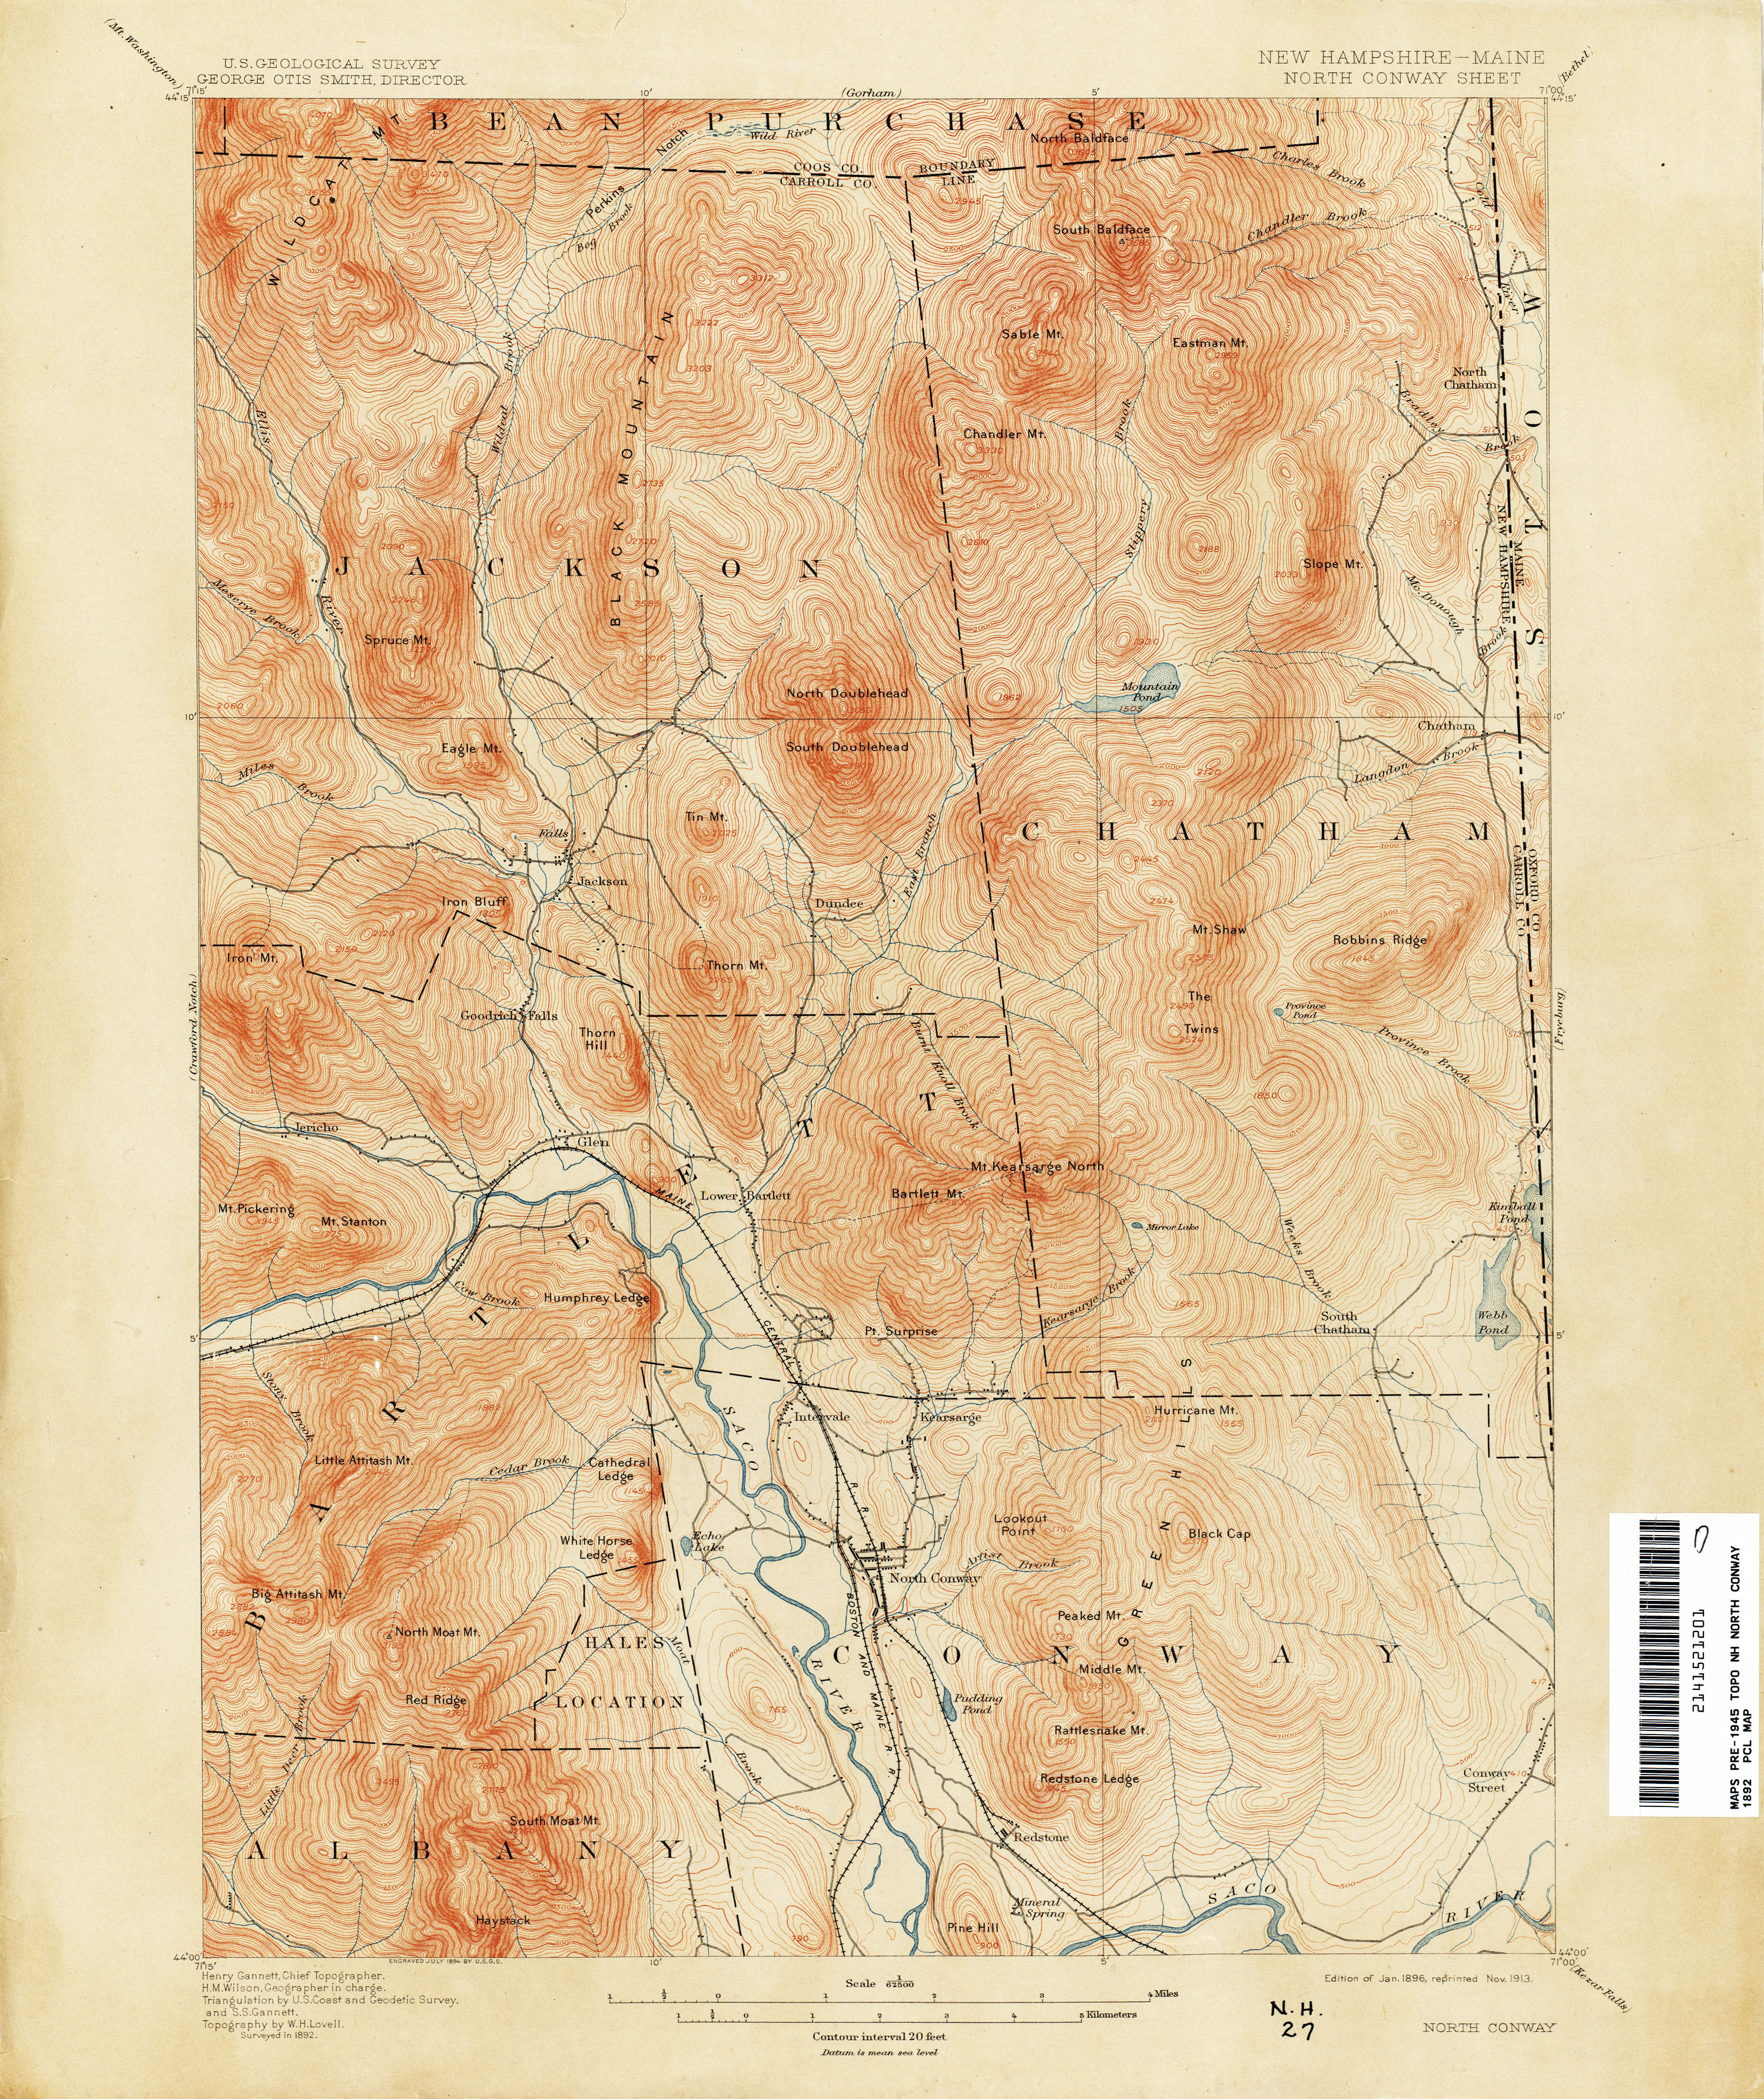 New Hampshire Topographic Maps PerryCastañeda Map Collection - North convey in us map